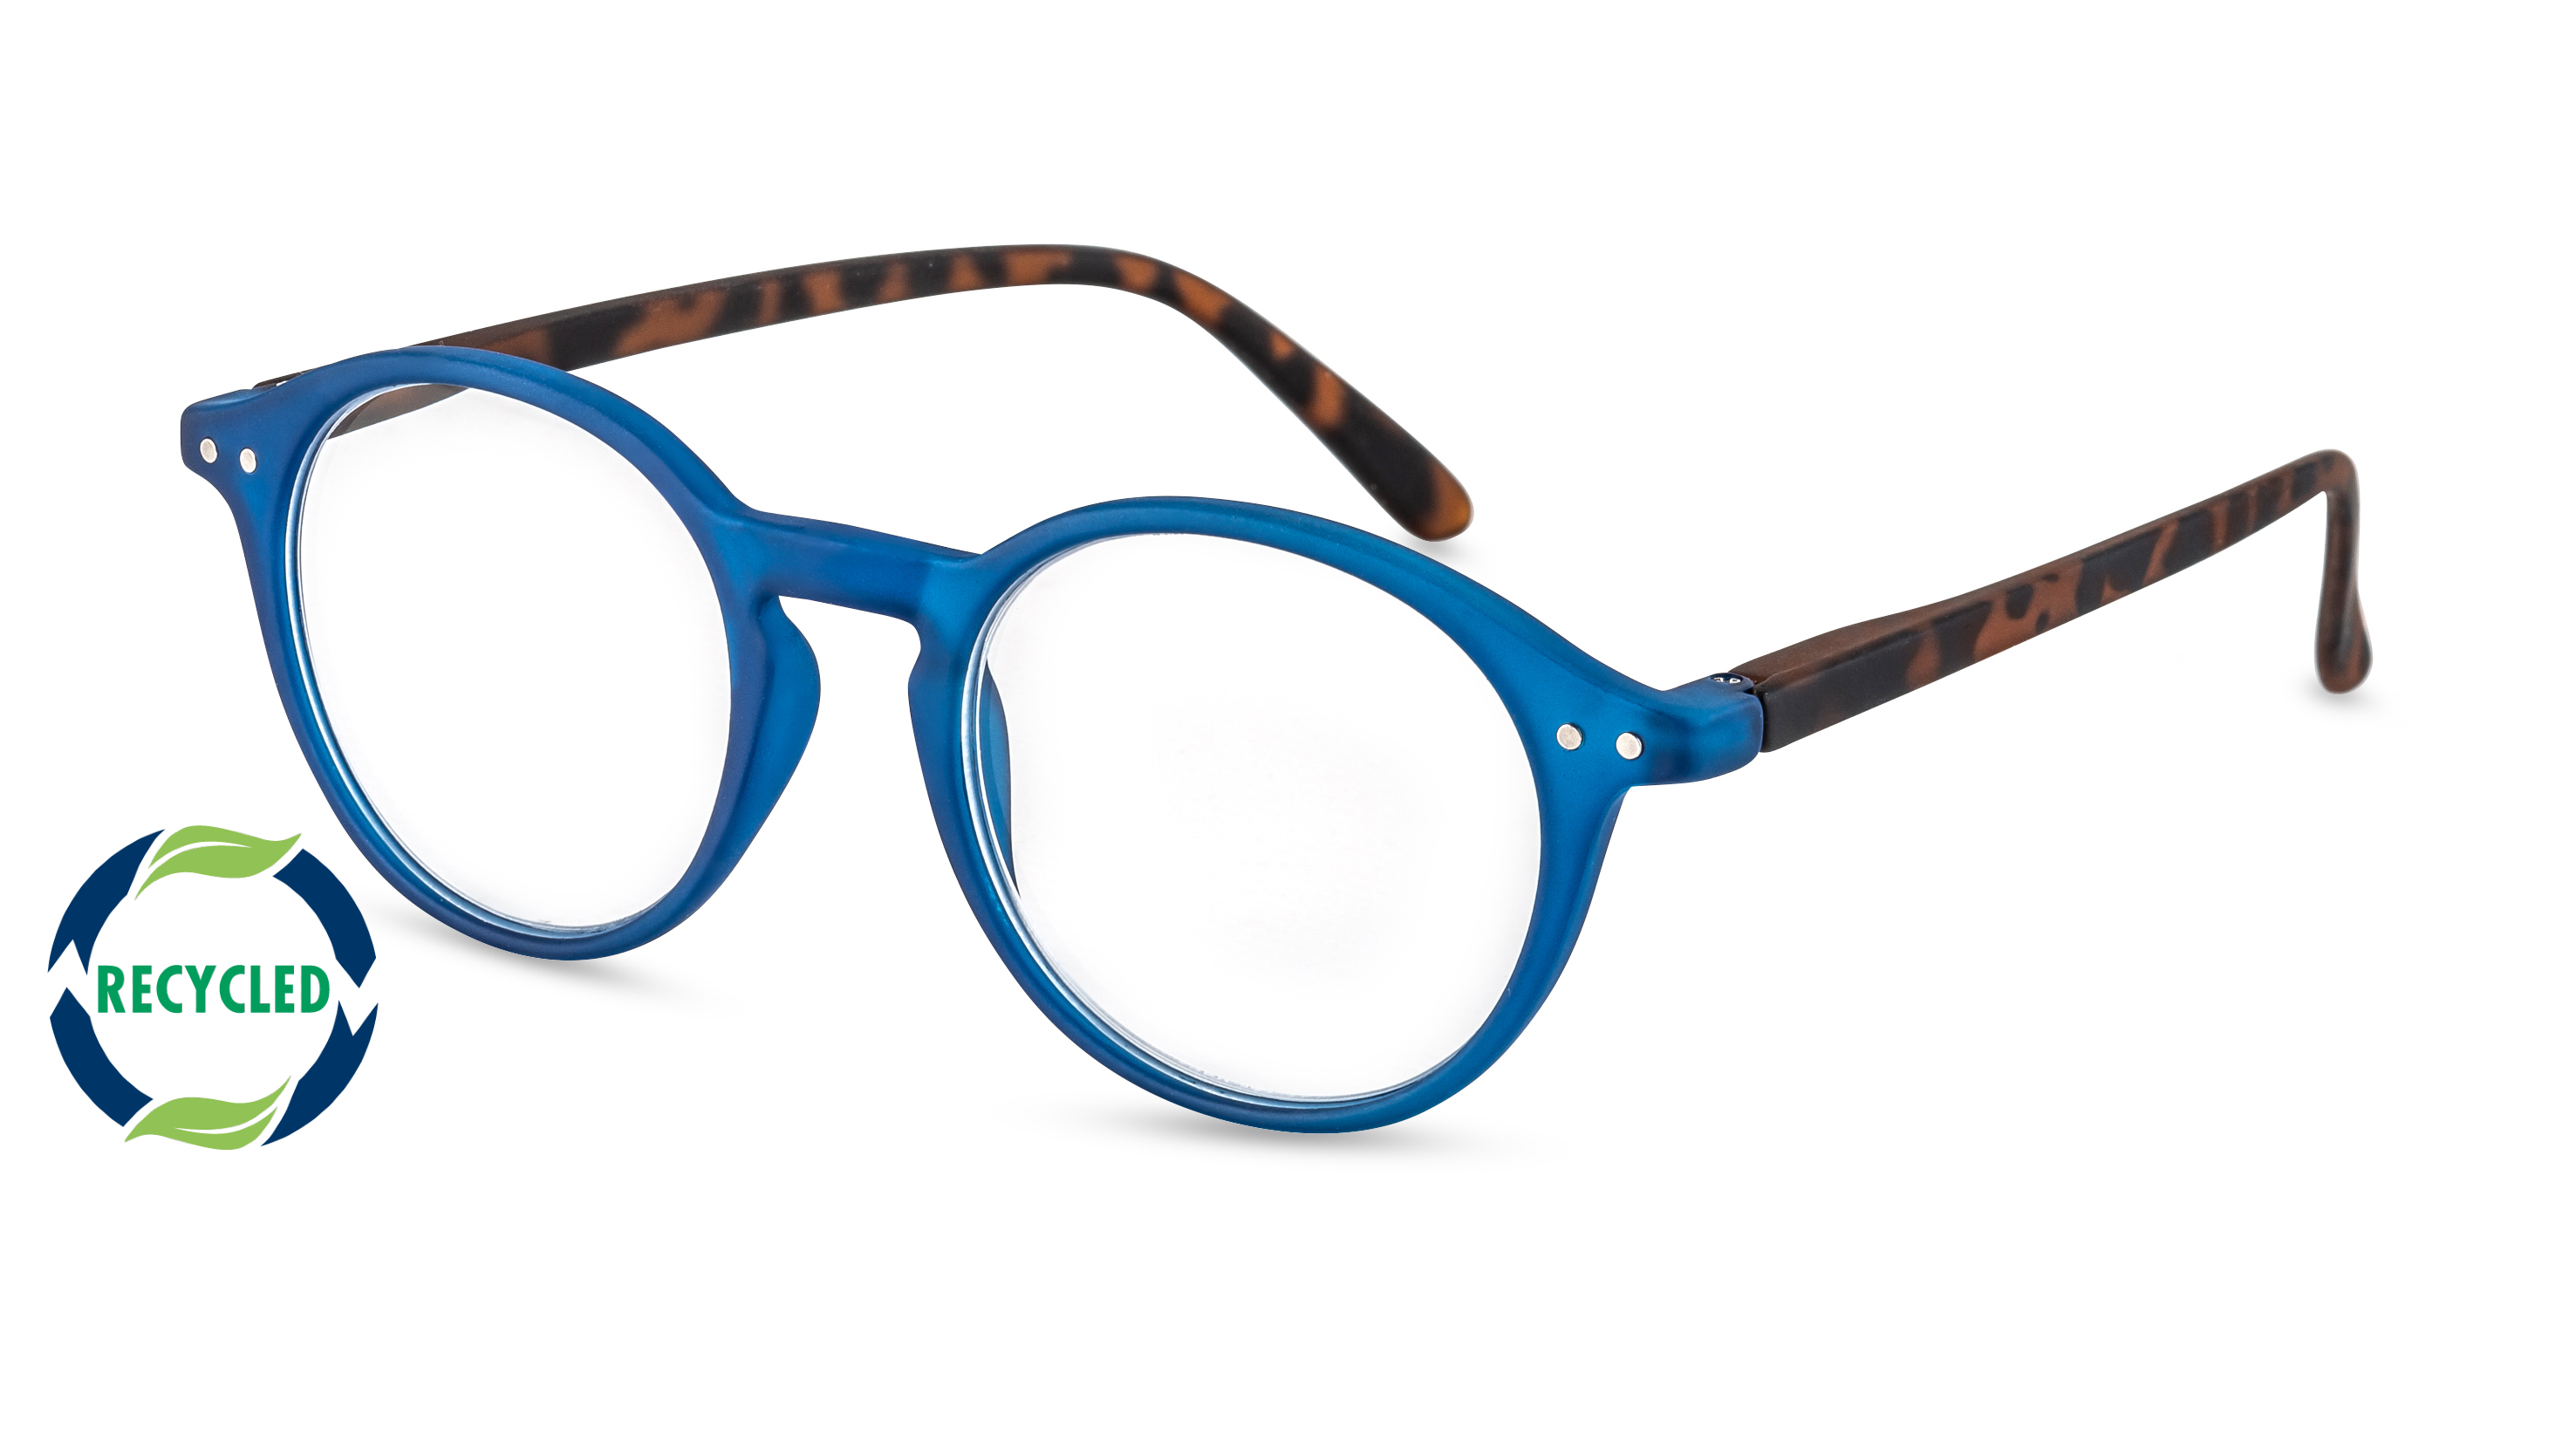 Filtral Recycled Reading Glasses Rio blue-havana